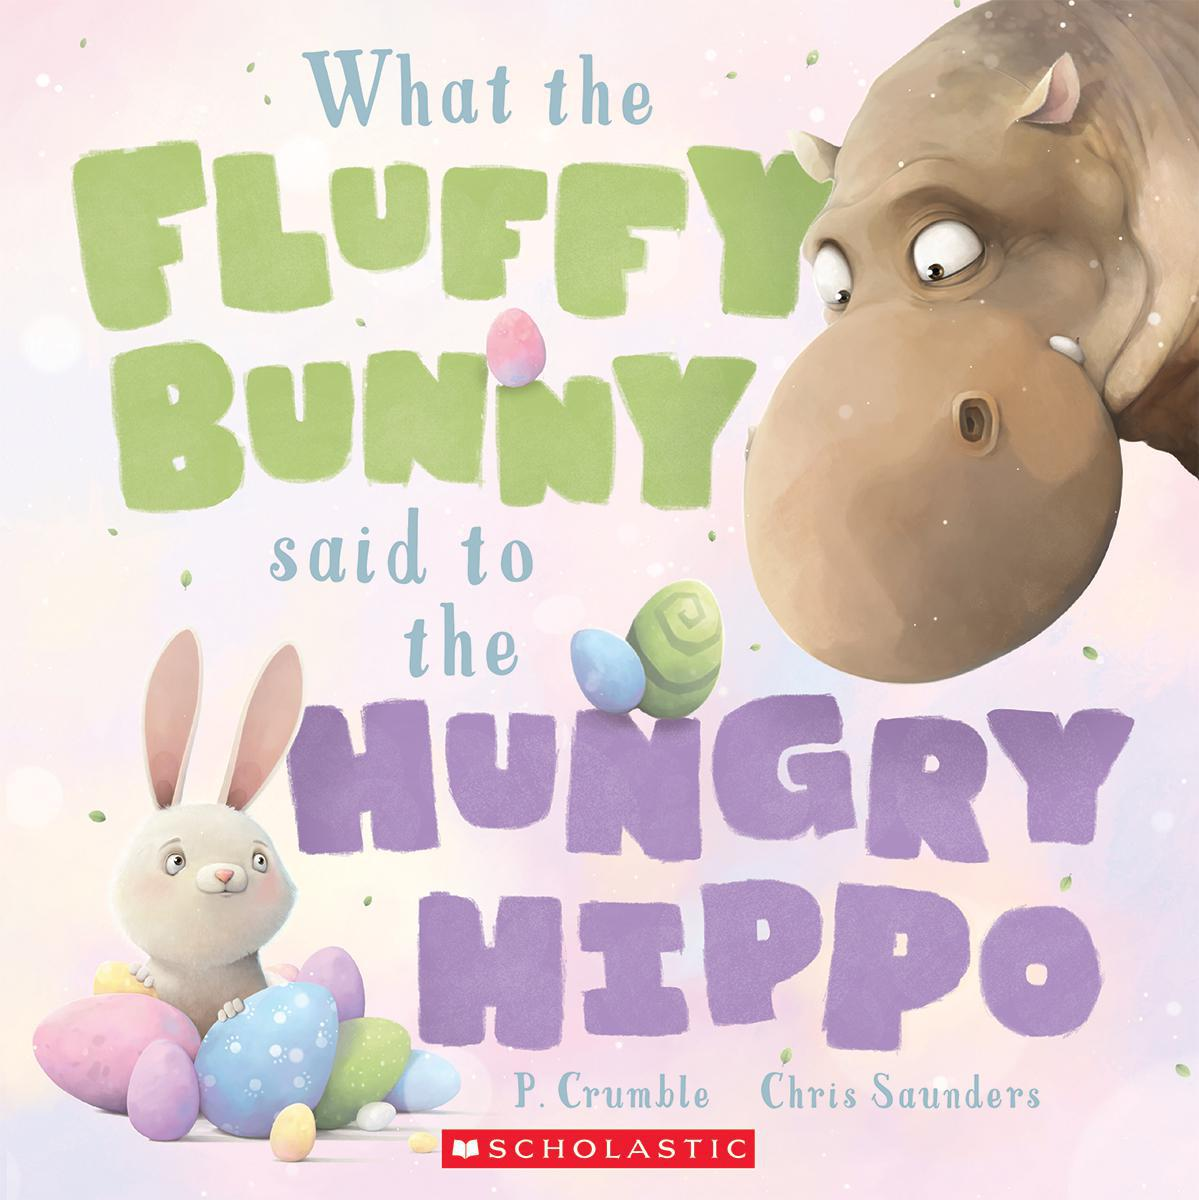 What the Fluffy Bunny Said to the Hungry Hippo